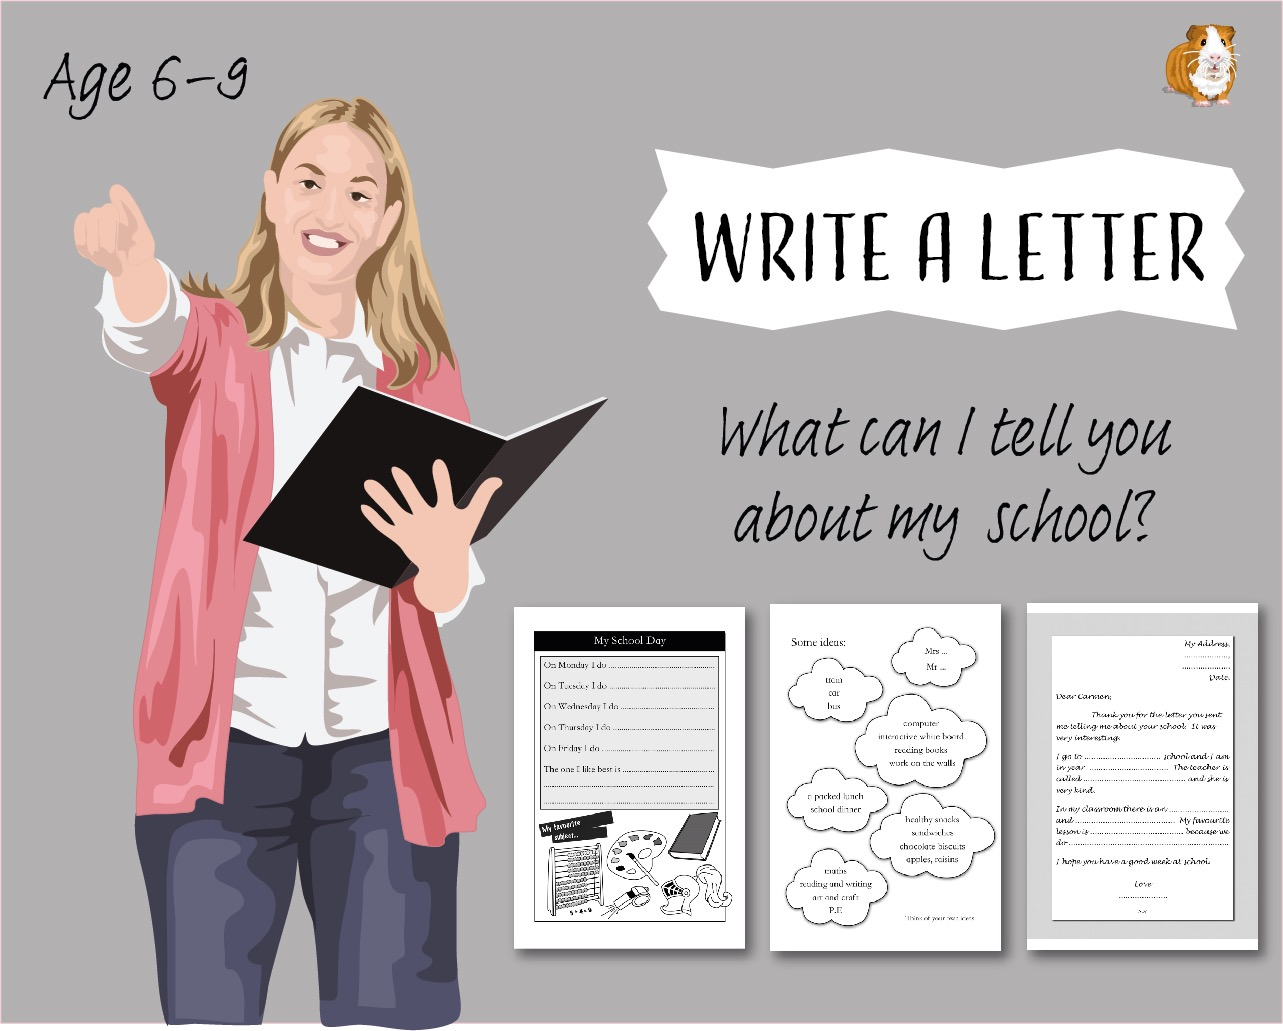 Write A Letter: What Can I Tell You About My School? (6-9 years)